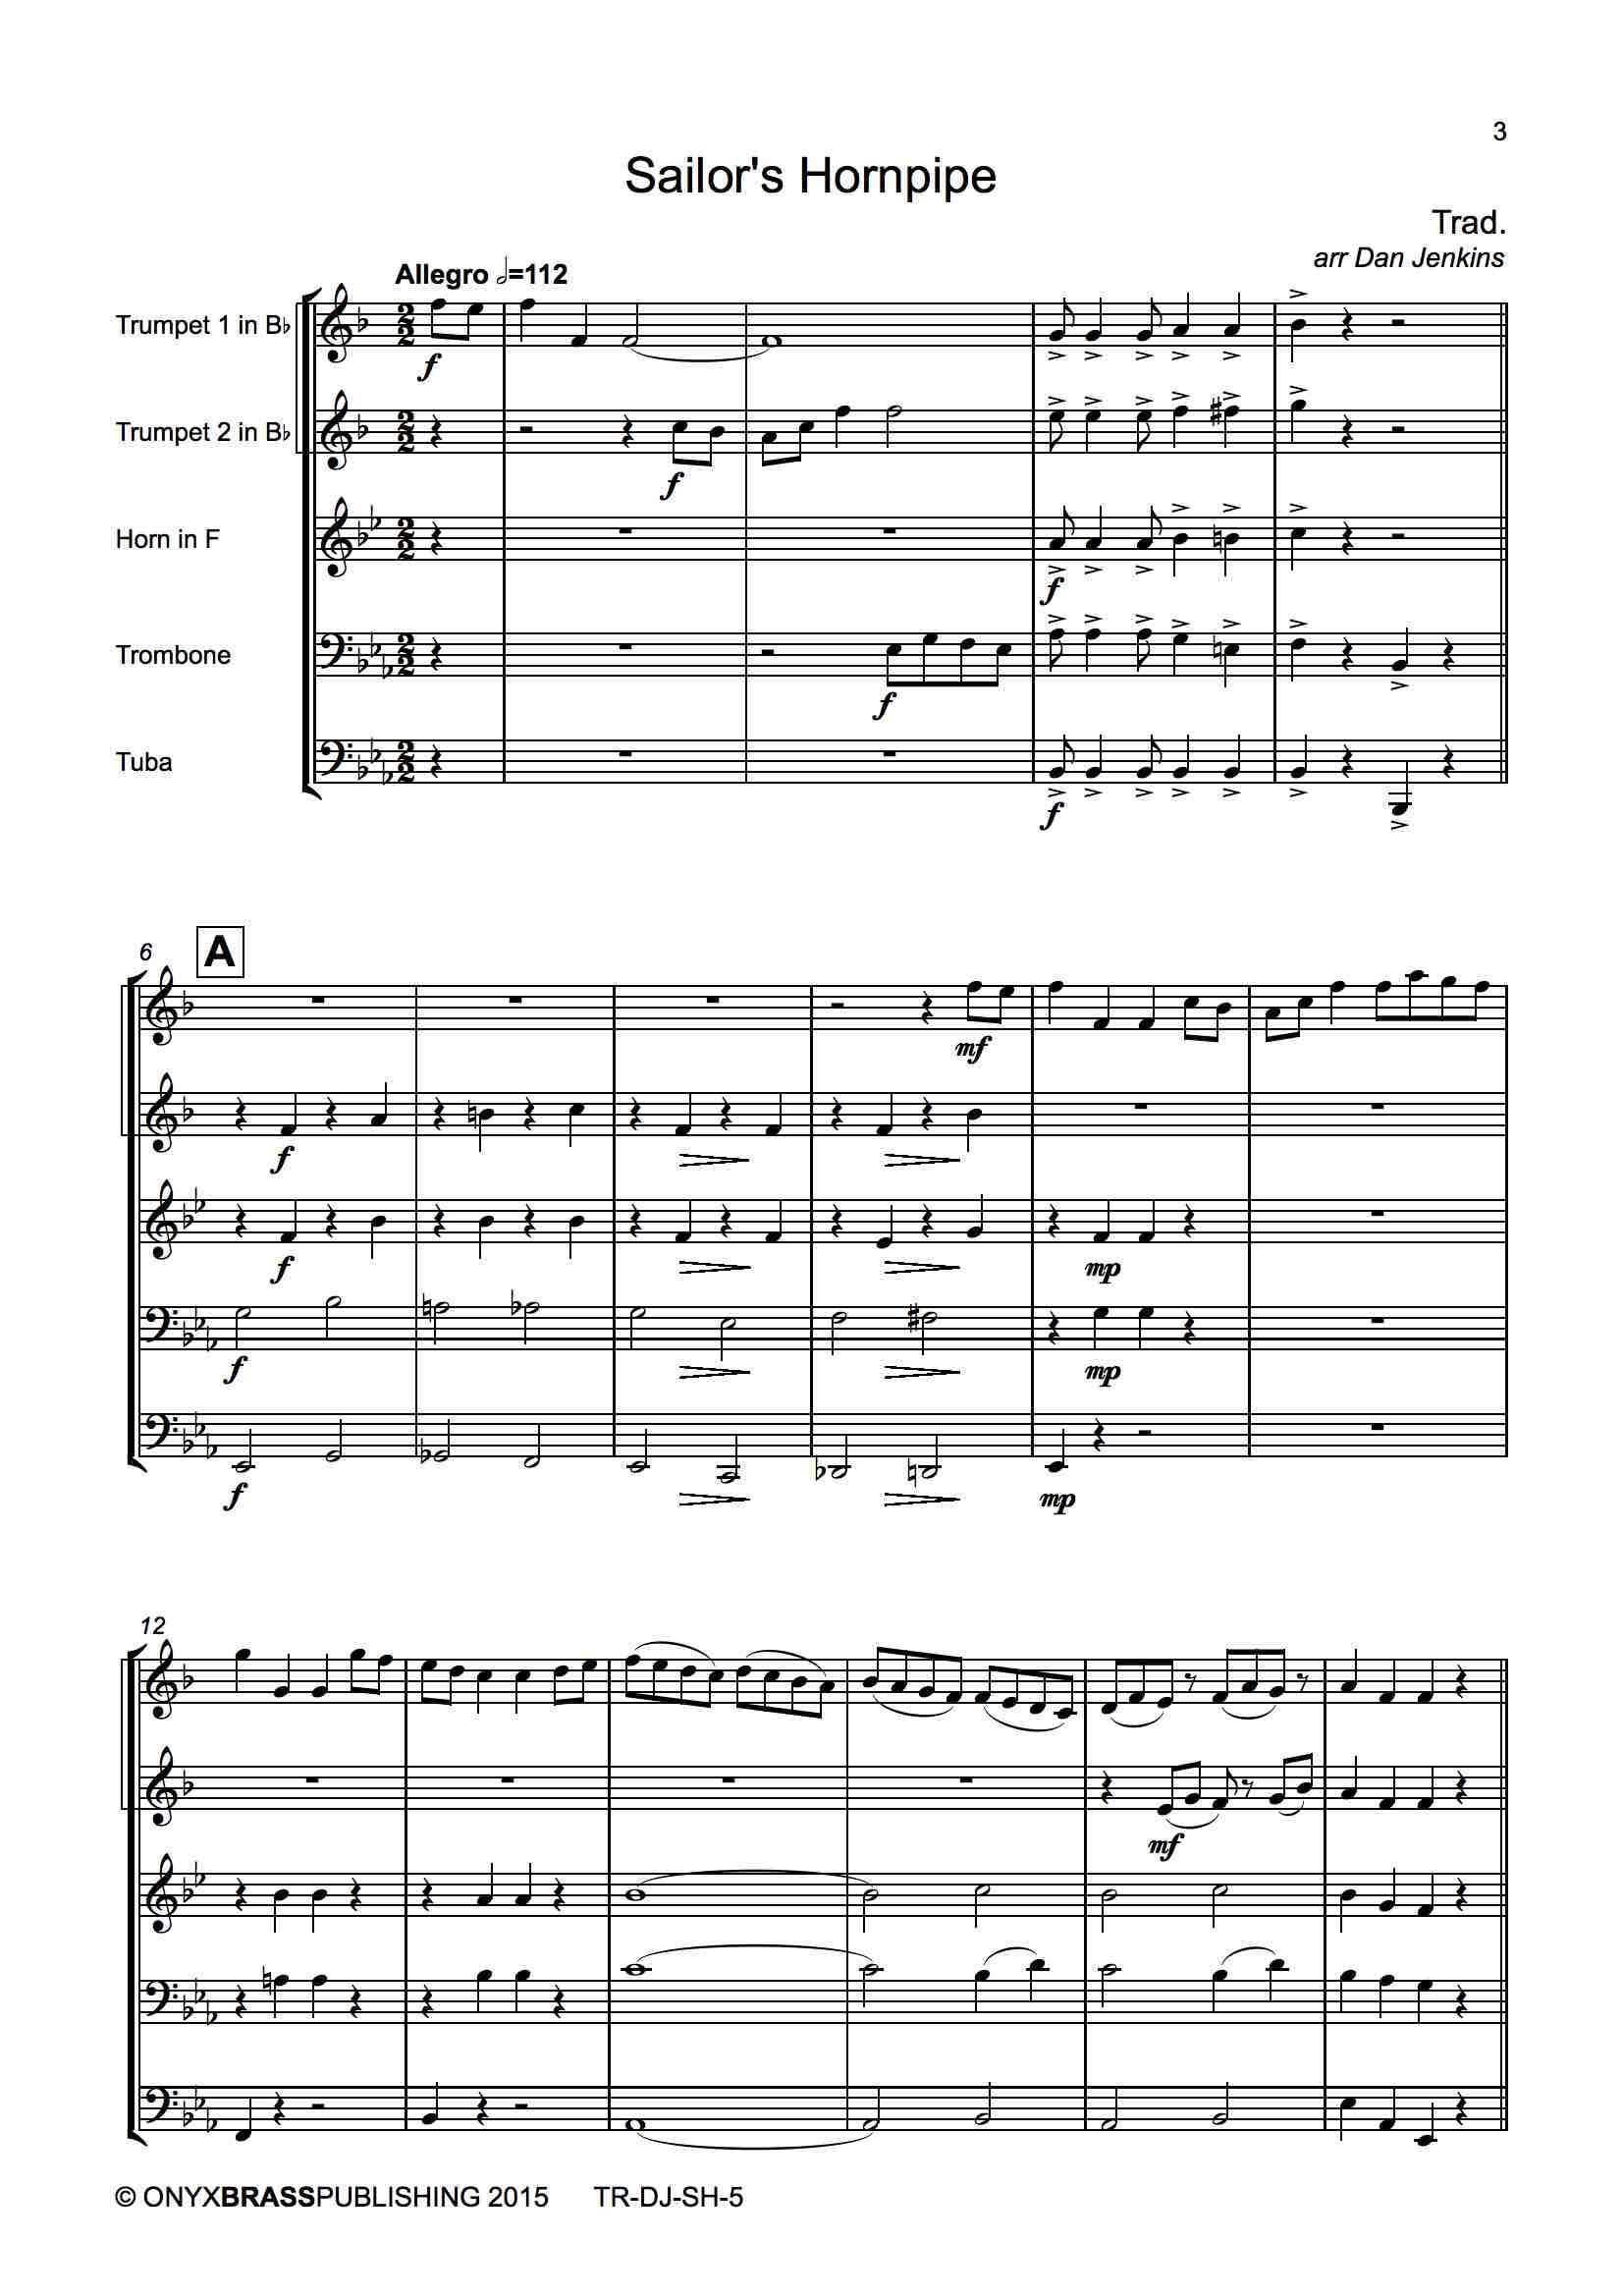 Sailor's Hornpipe - example page